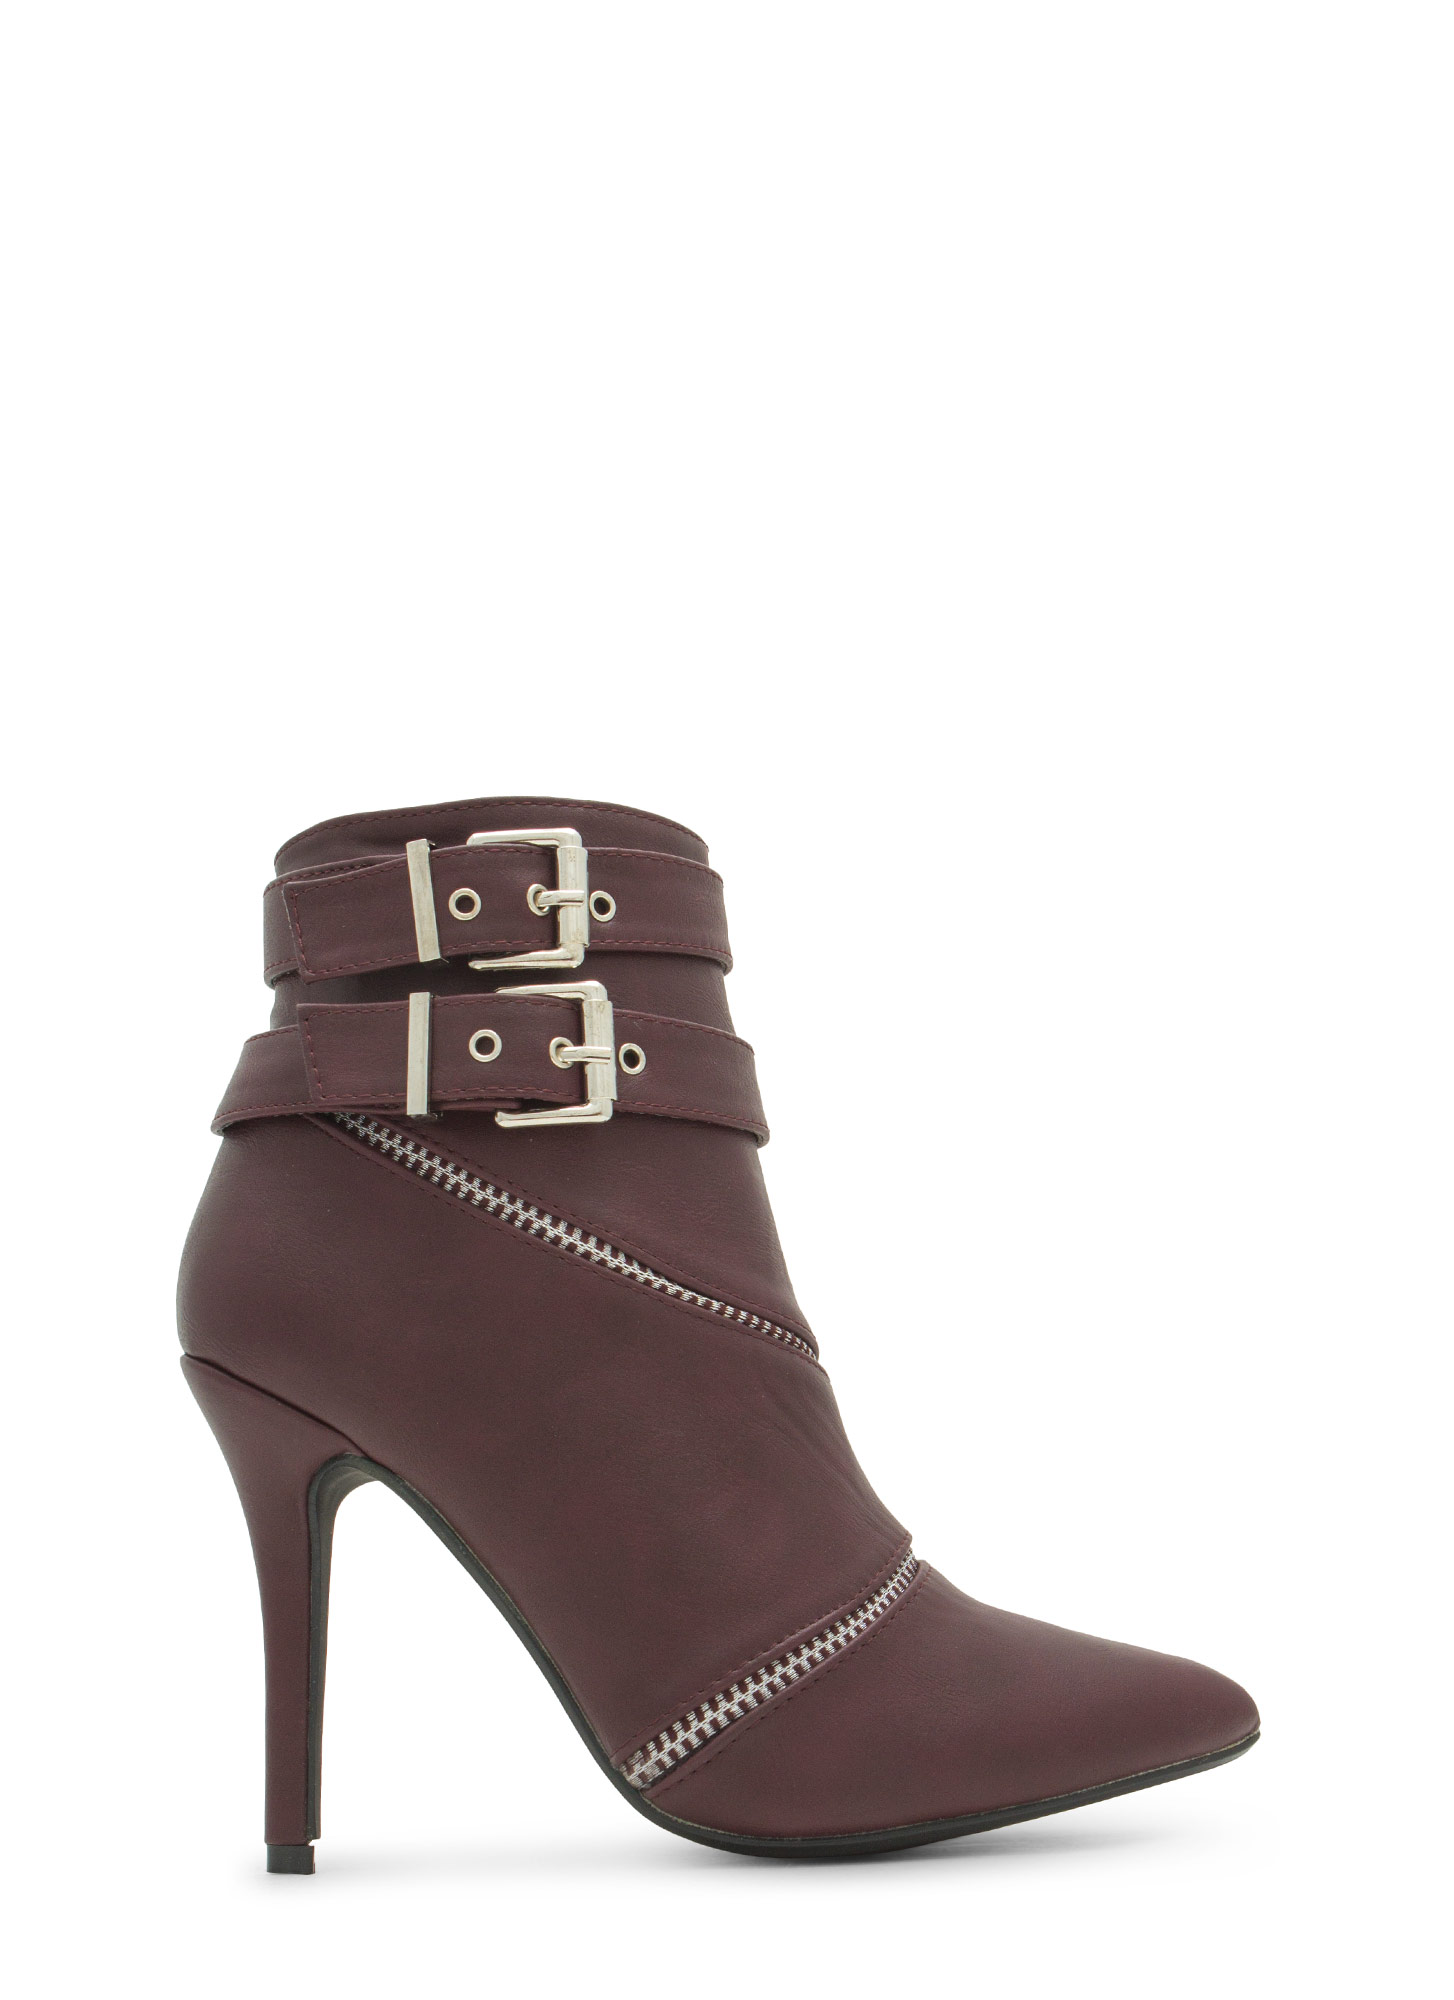 Two Is Better Than One Booties OXBLOOD